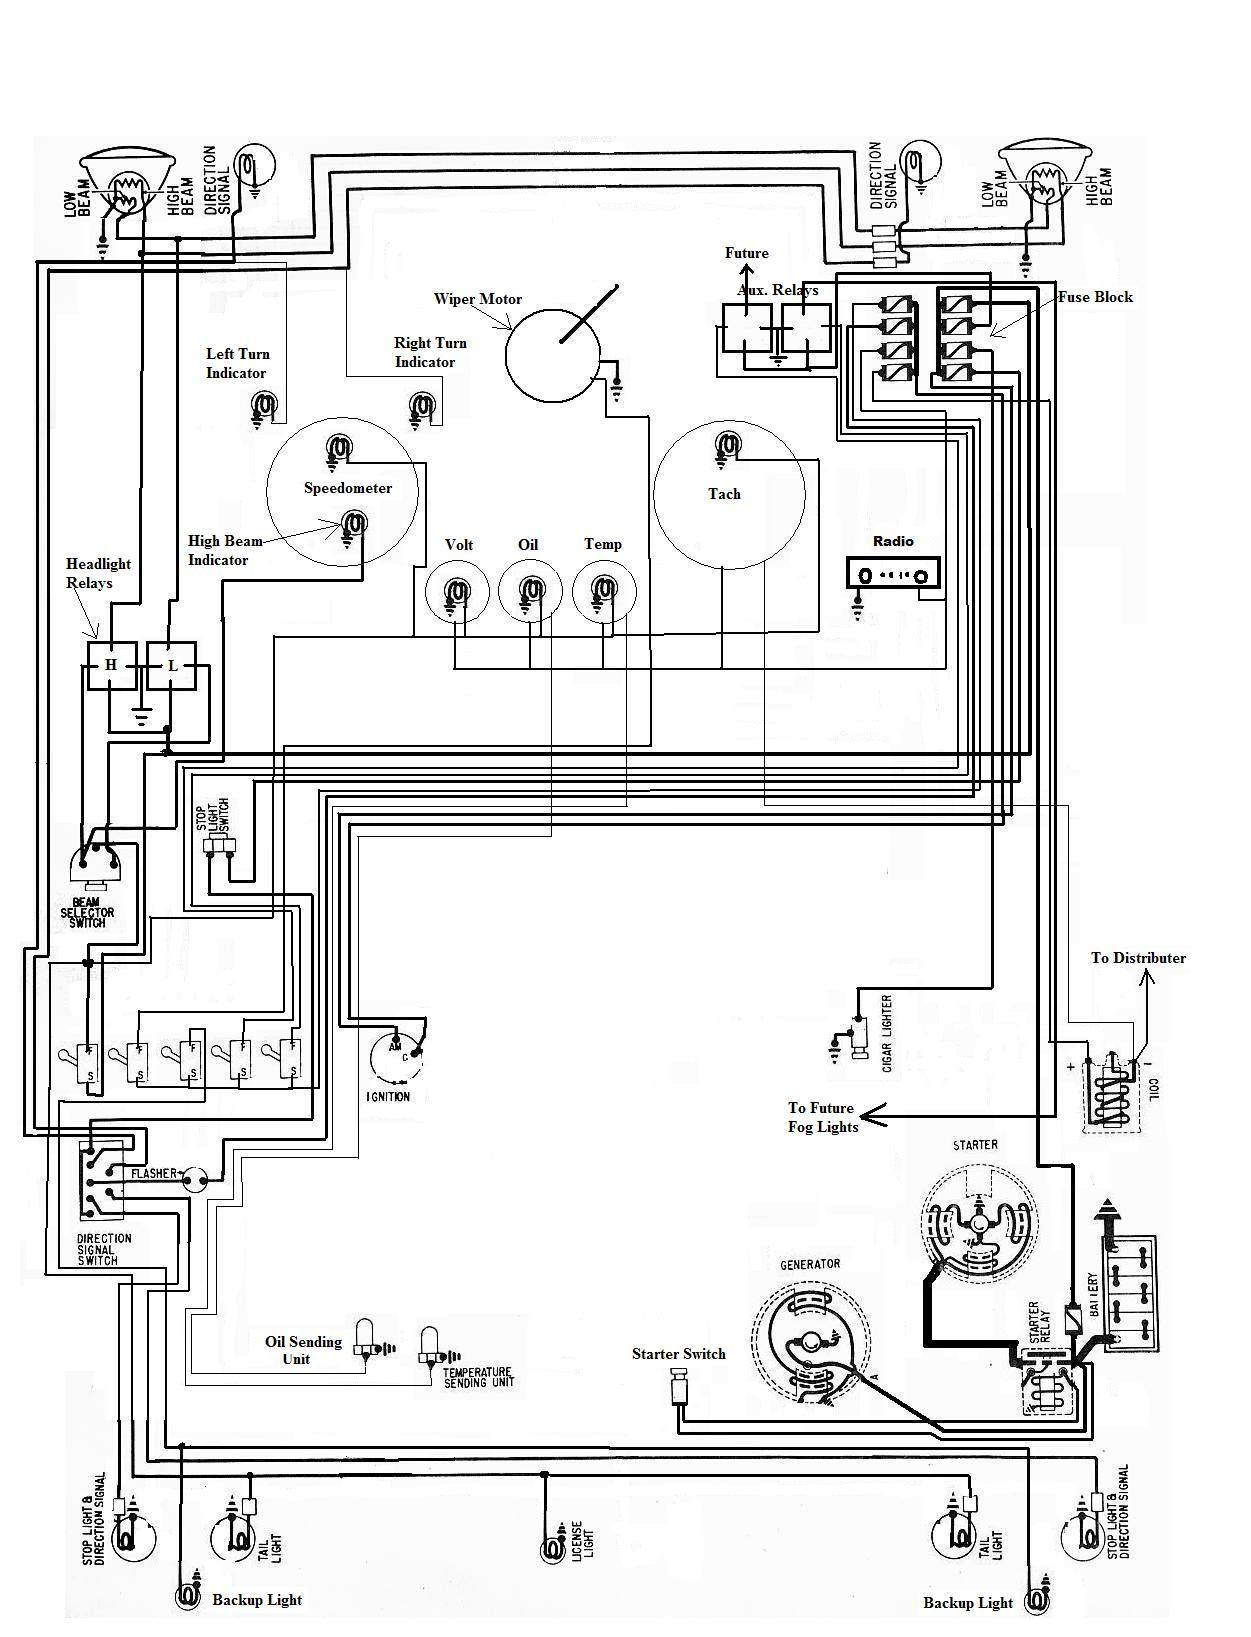 35 Vw Dune Buggy Wiring Diagram